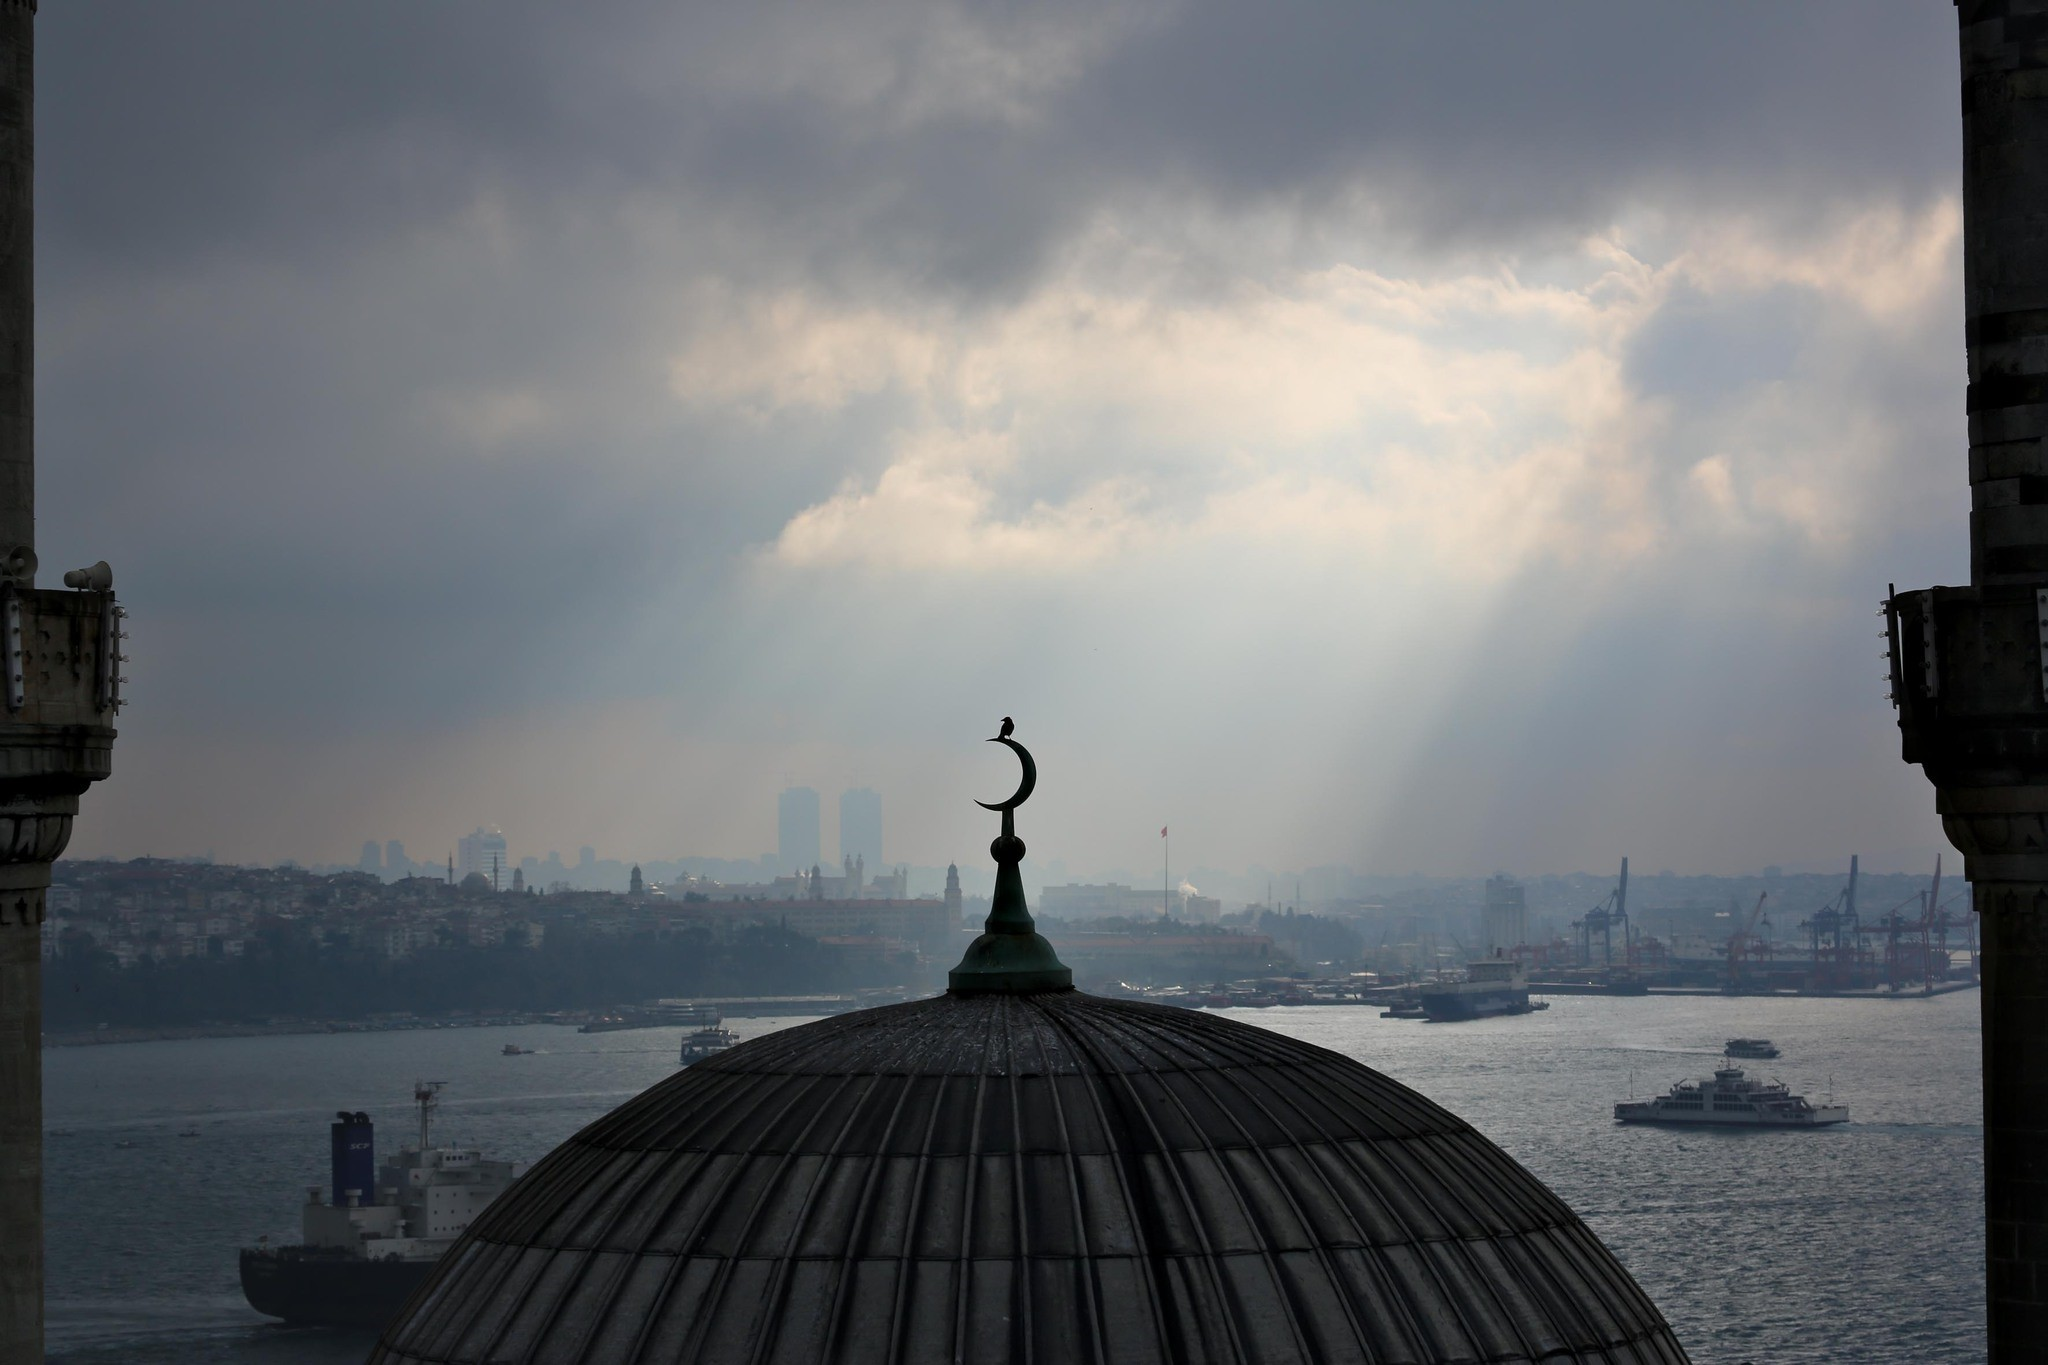 This photo shows a bird standing on the crescent atop the dome of Cihangir Mosque in Istanbul's Beyou011flu district with the Bosporus and Asian side in the background. (Photo: YKKSY/Orhan Pamuk)